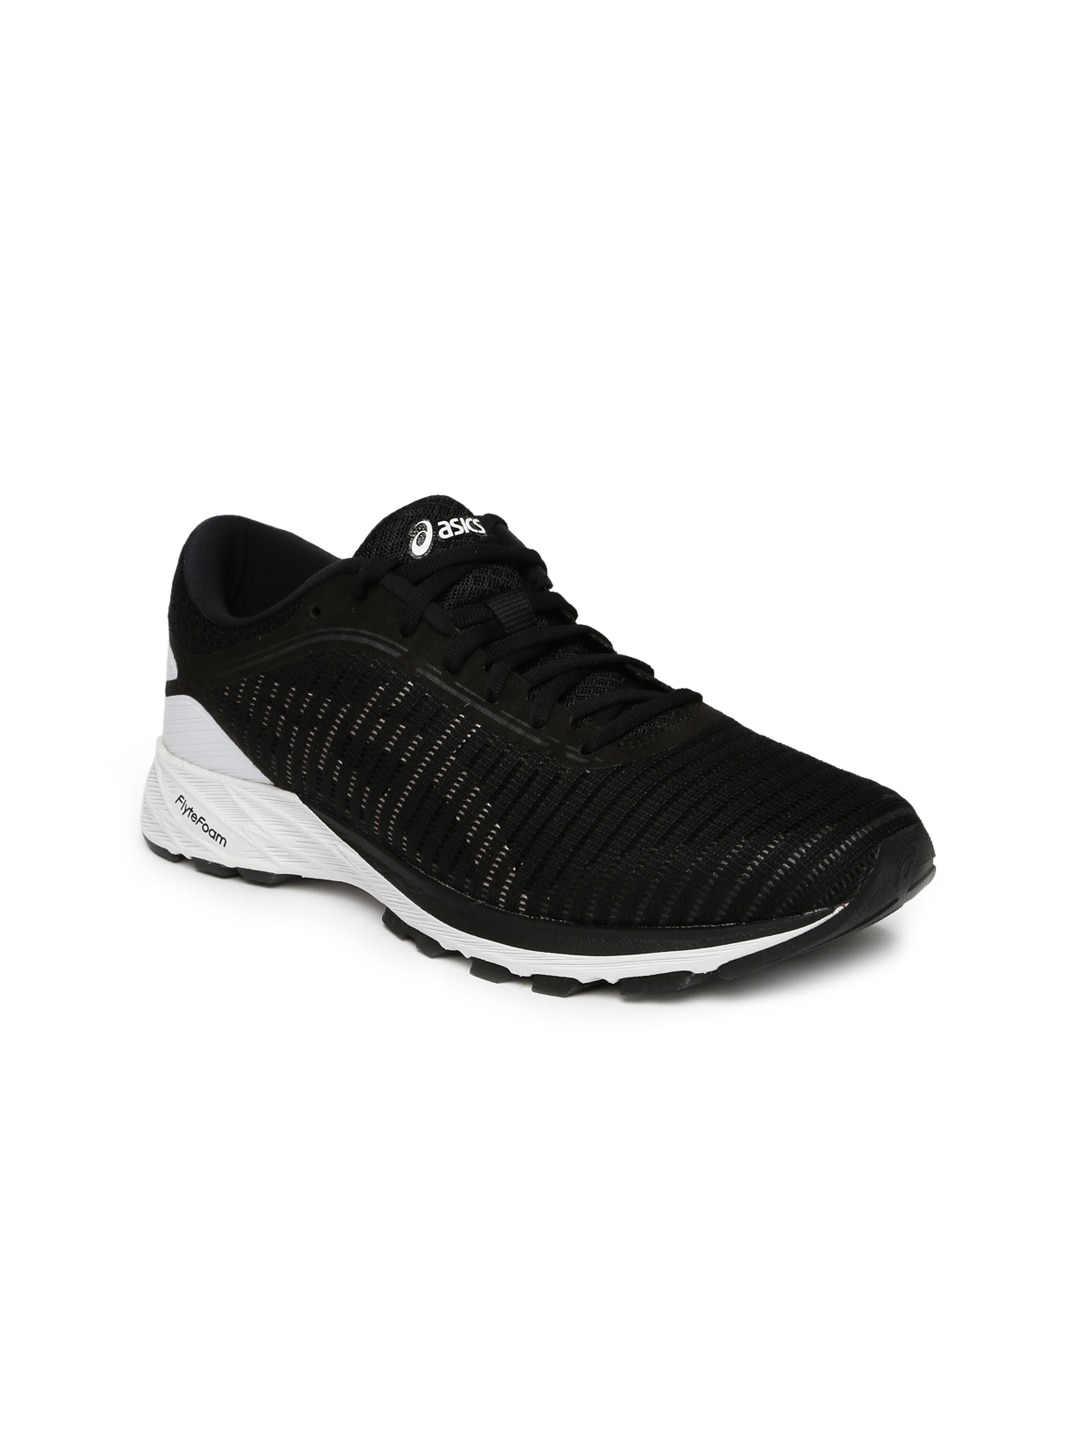 14e4bdda06e100 Sports Shoes for Women - Buy Women Sports Shoes Online